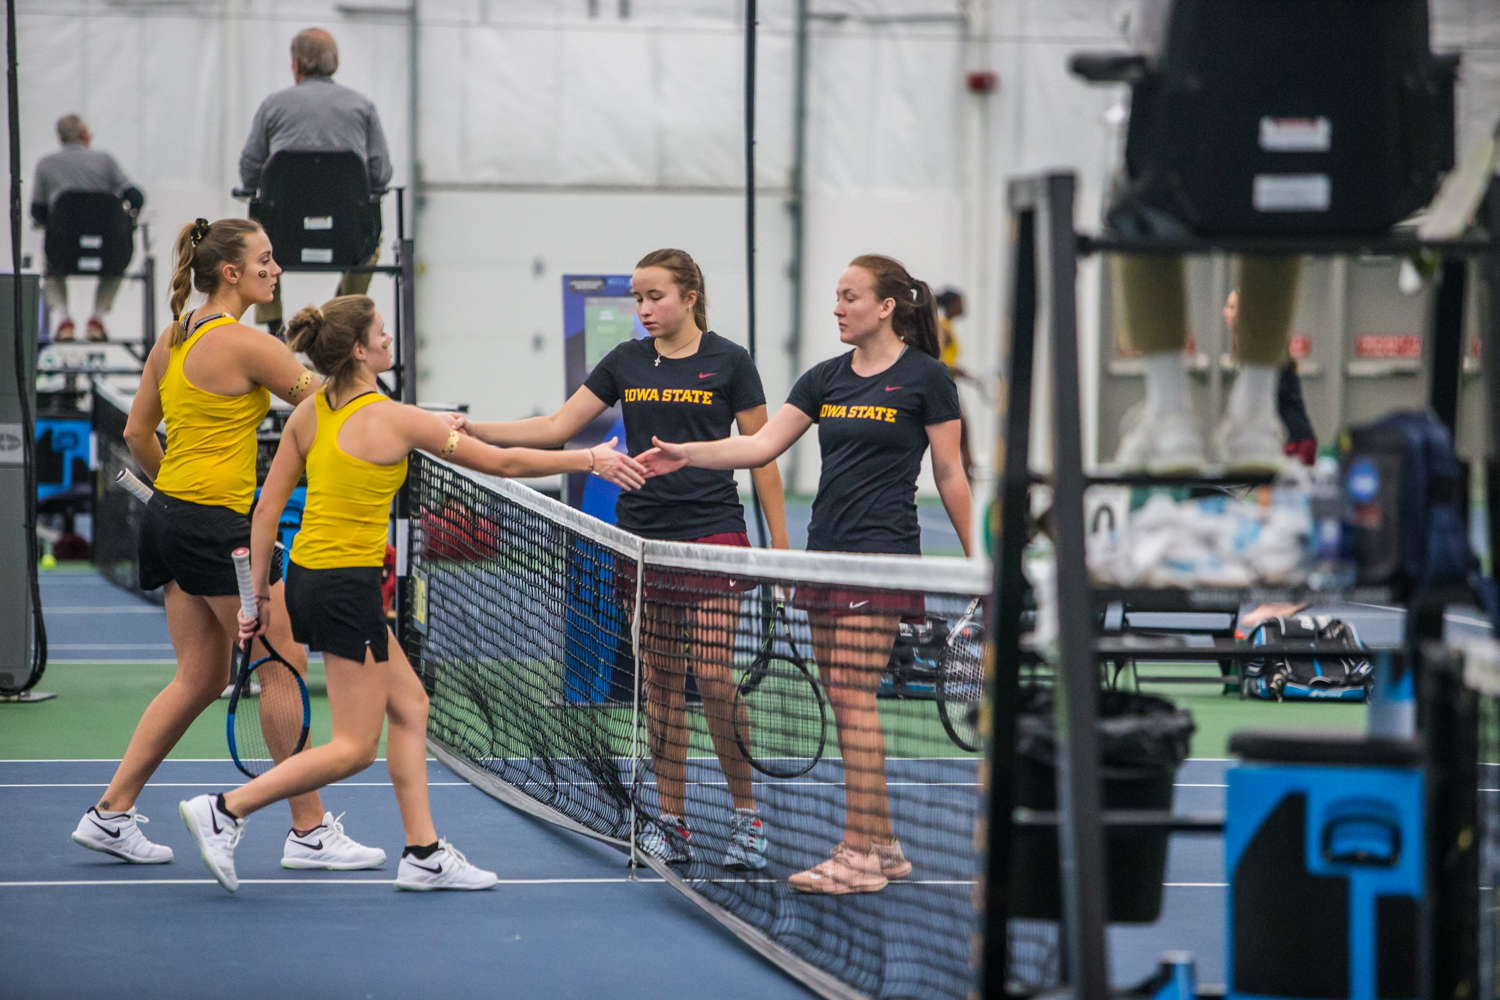 Iowa%27s+Cloe+Ruette+and+Ashleigh+Jacobs+shake+hands+with+Iowa+State%27s+Ekaterina+Grib+and+Margarita+Timakova+during+a+women%27s+tennis+matchup+between+Iowa+and+Iowa+State+at+the+Hawkeye+Tennis+and+Recreation+Complex+on+Friday%2C+February+8%2C+2019.++The+Hawkeyes+dropped+the+doubles+point+but+swept+singles+matches%2C+defeating+the+Cyclones+4-1.